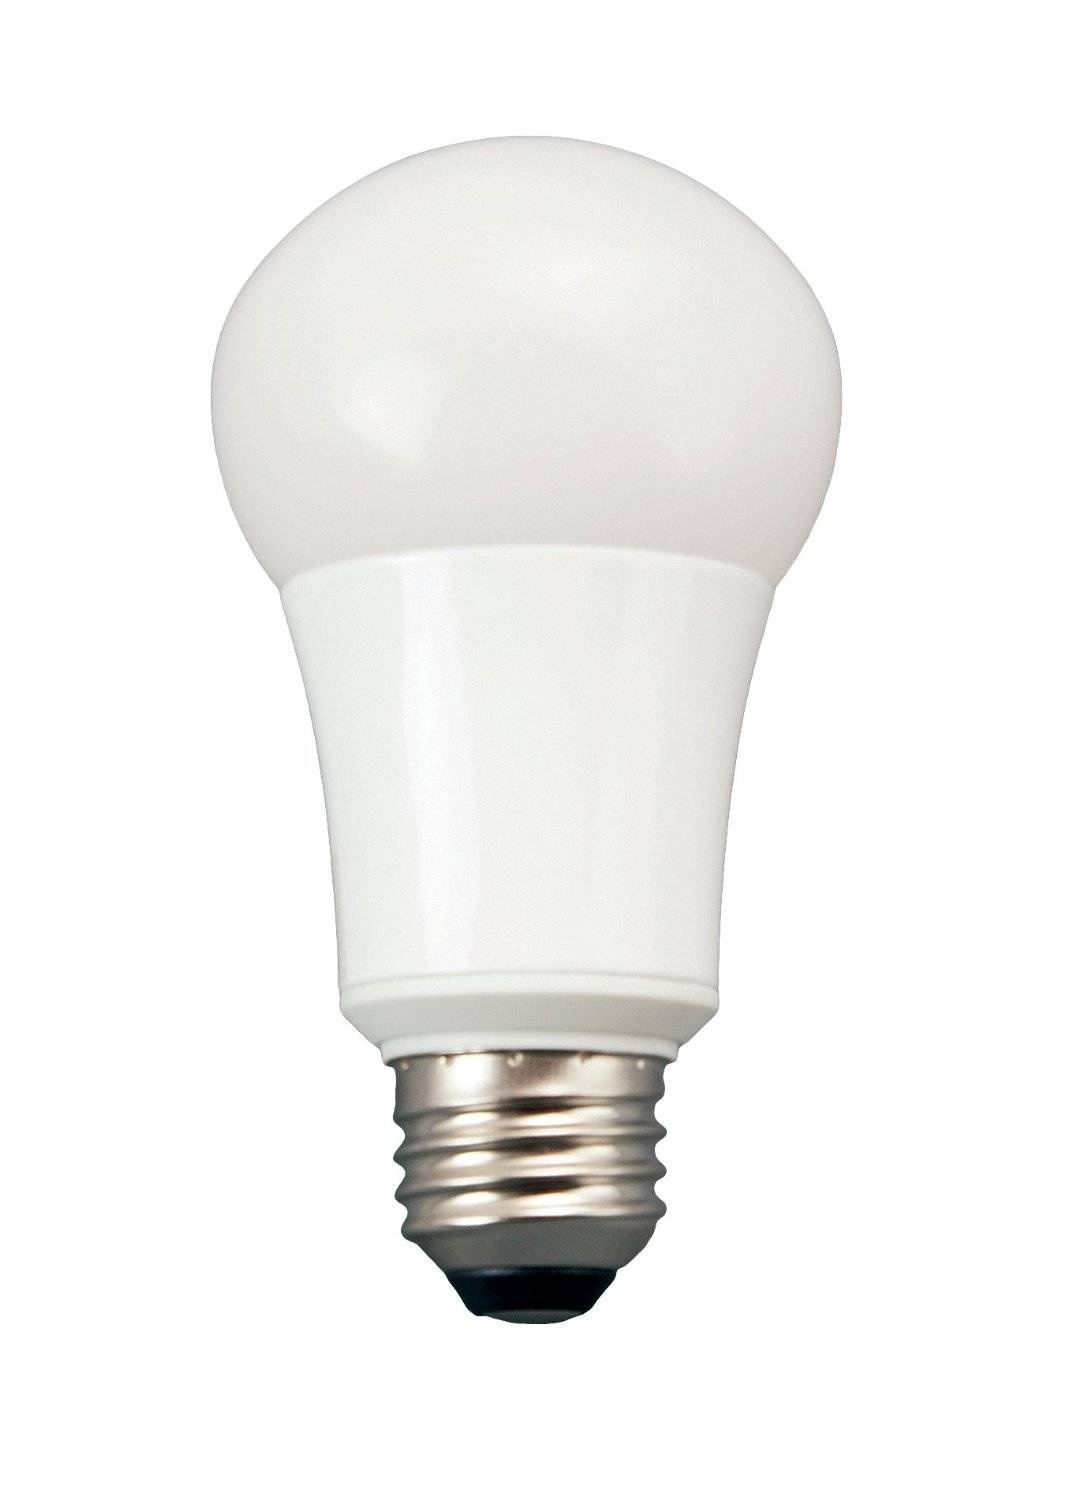 Led Light Bulbs 60w Equivalent: Great Value 8.5W LED Light Bulb, Daylight,Lighting